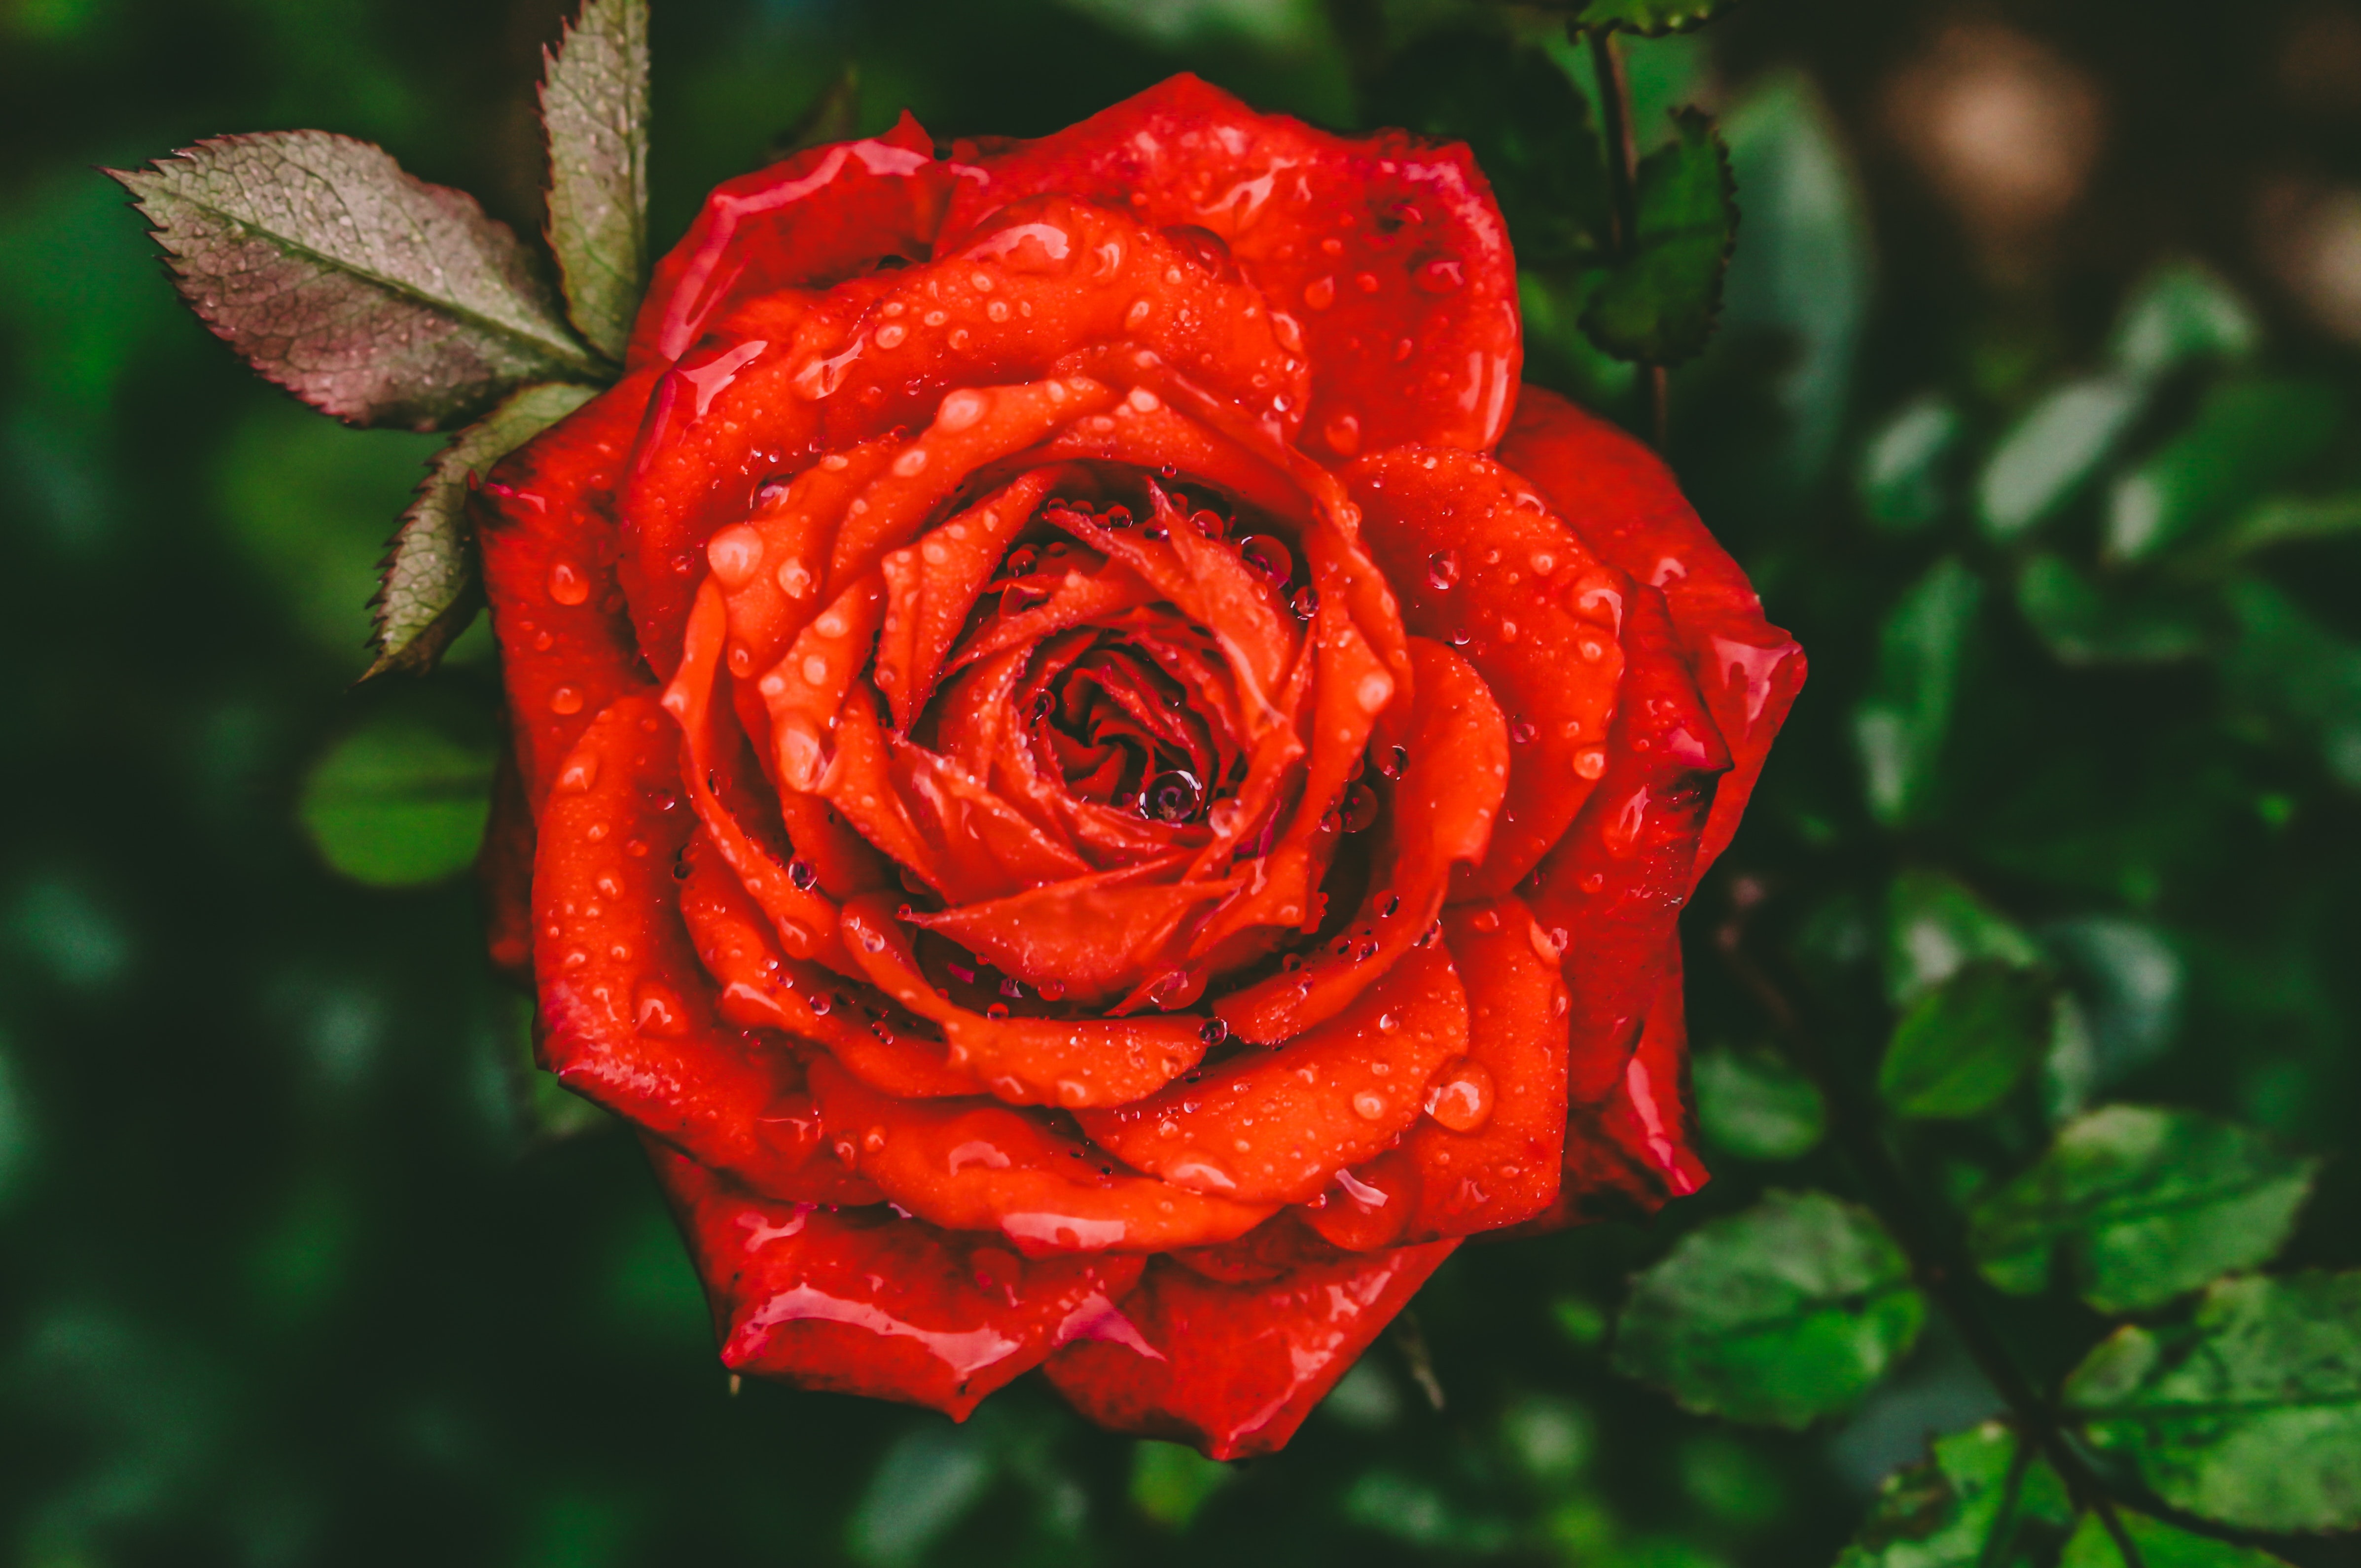 Close Up Photography Of Red Rose Flower With Water Drops